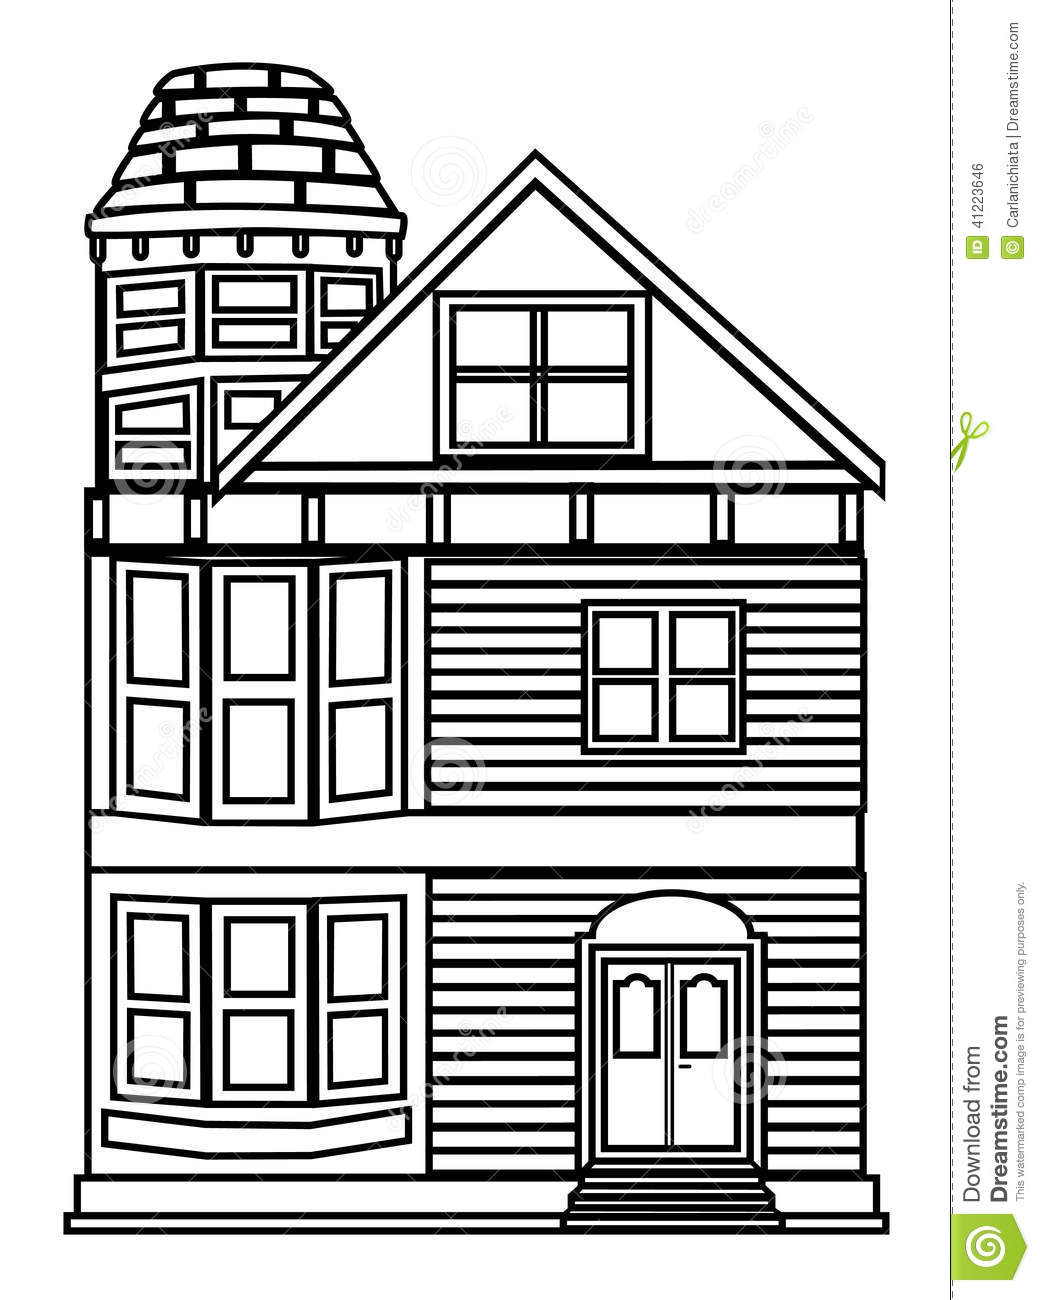 House Outline Stock Vector Illustration Of Simple Shape